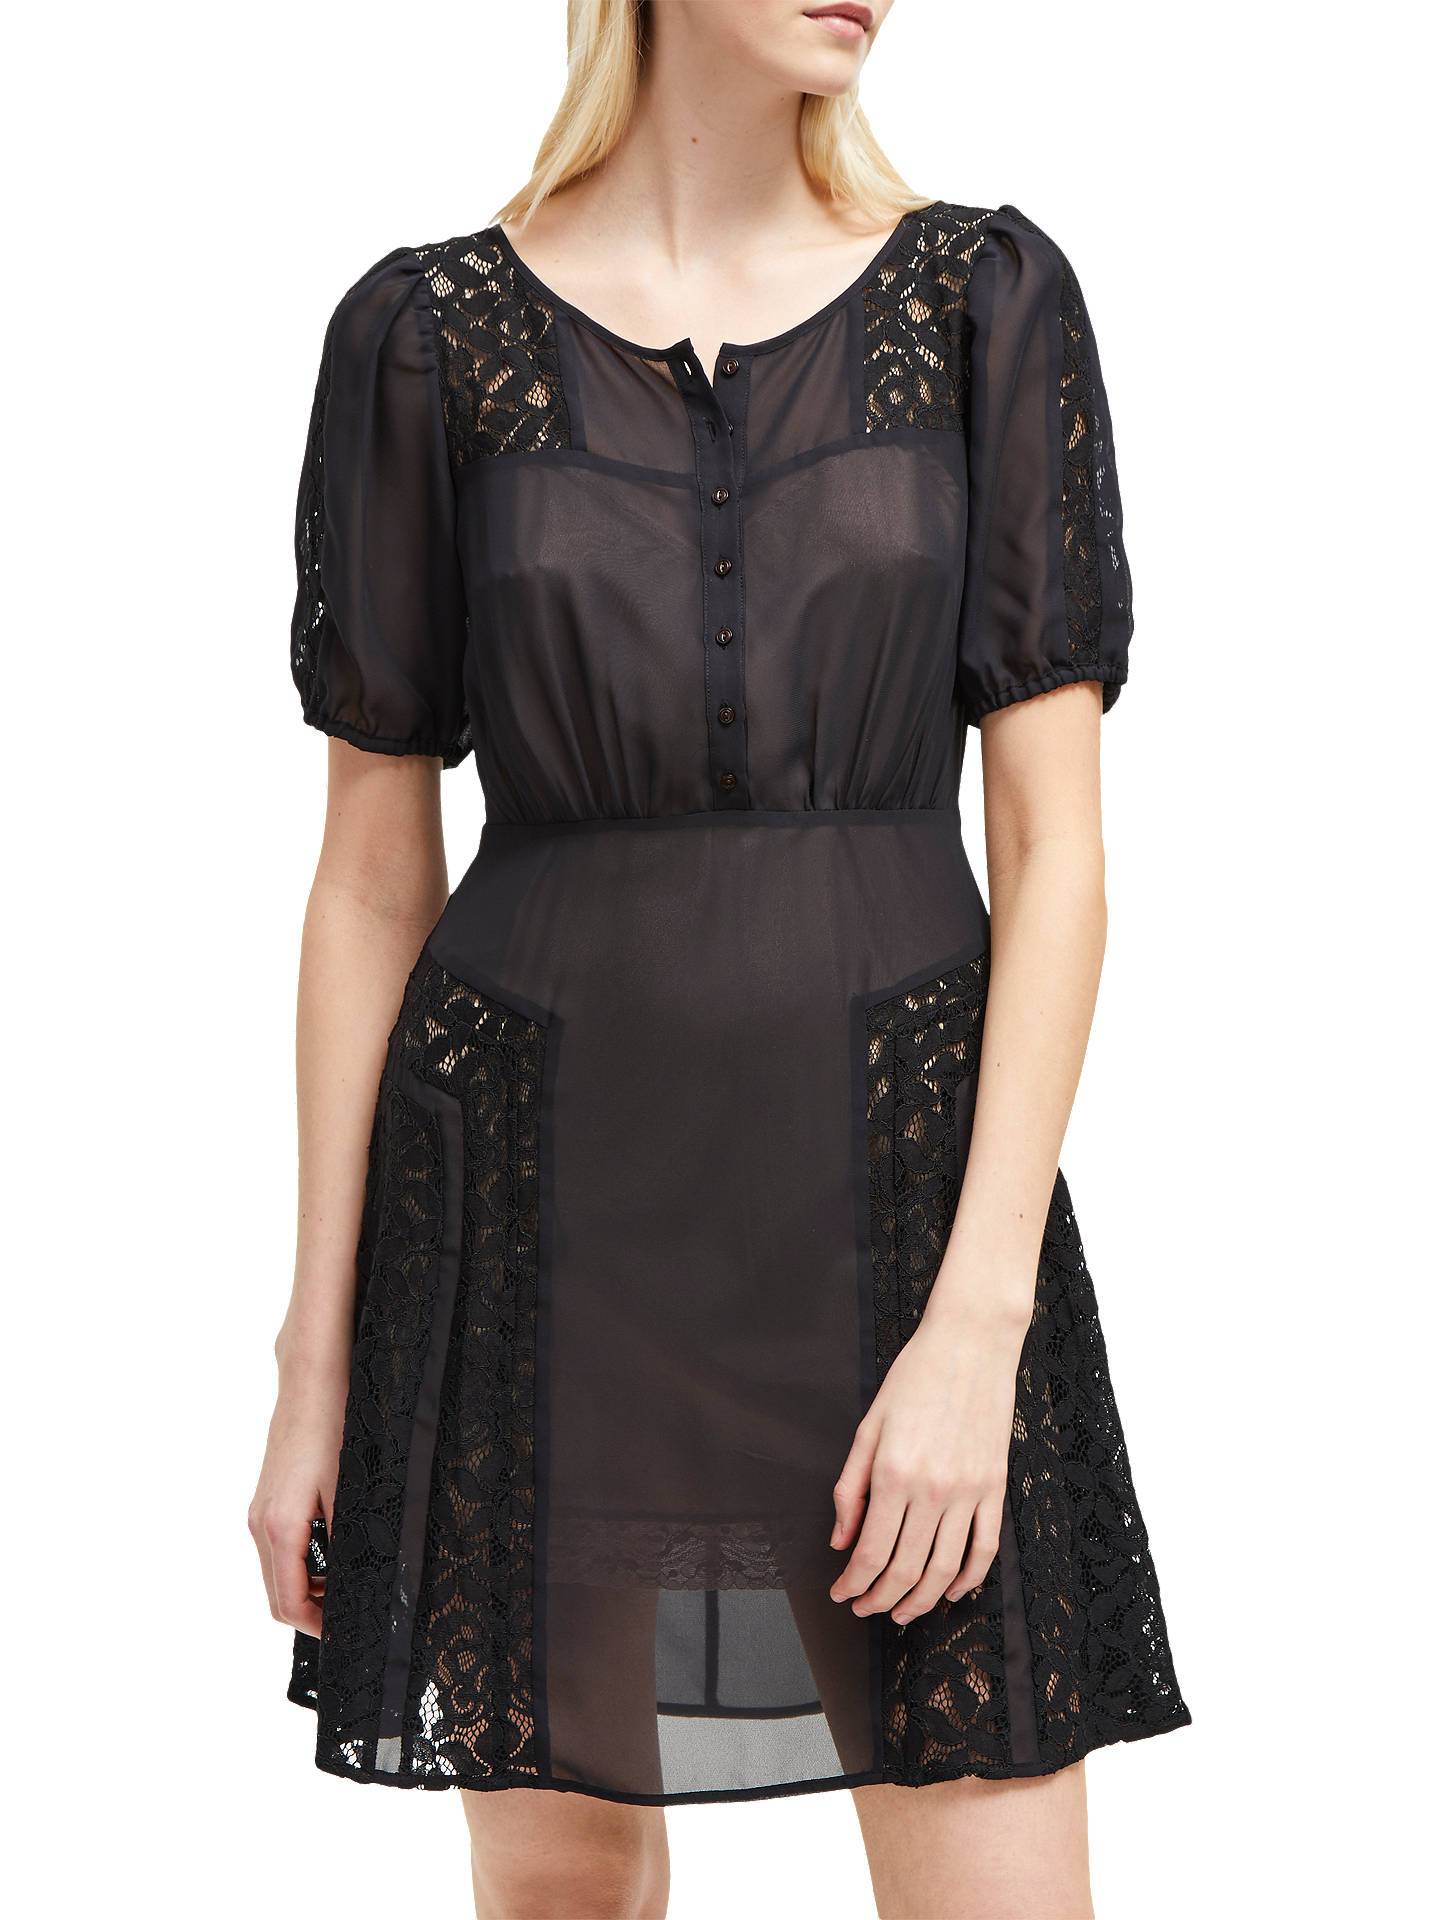 4fdd847c8a Buy French Connection Dawn Sheer Panelled Dress, Black, 6 Online at  johnlewis.com ...